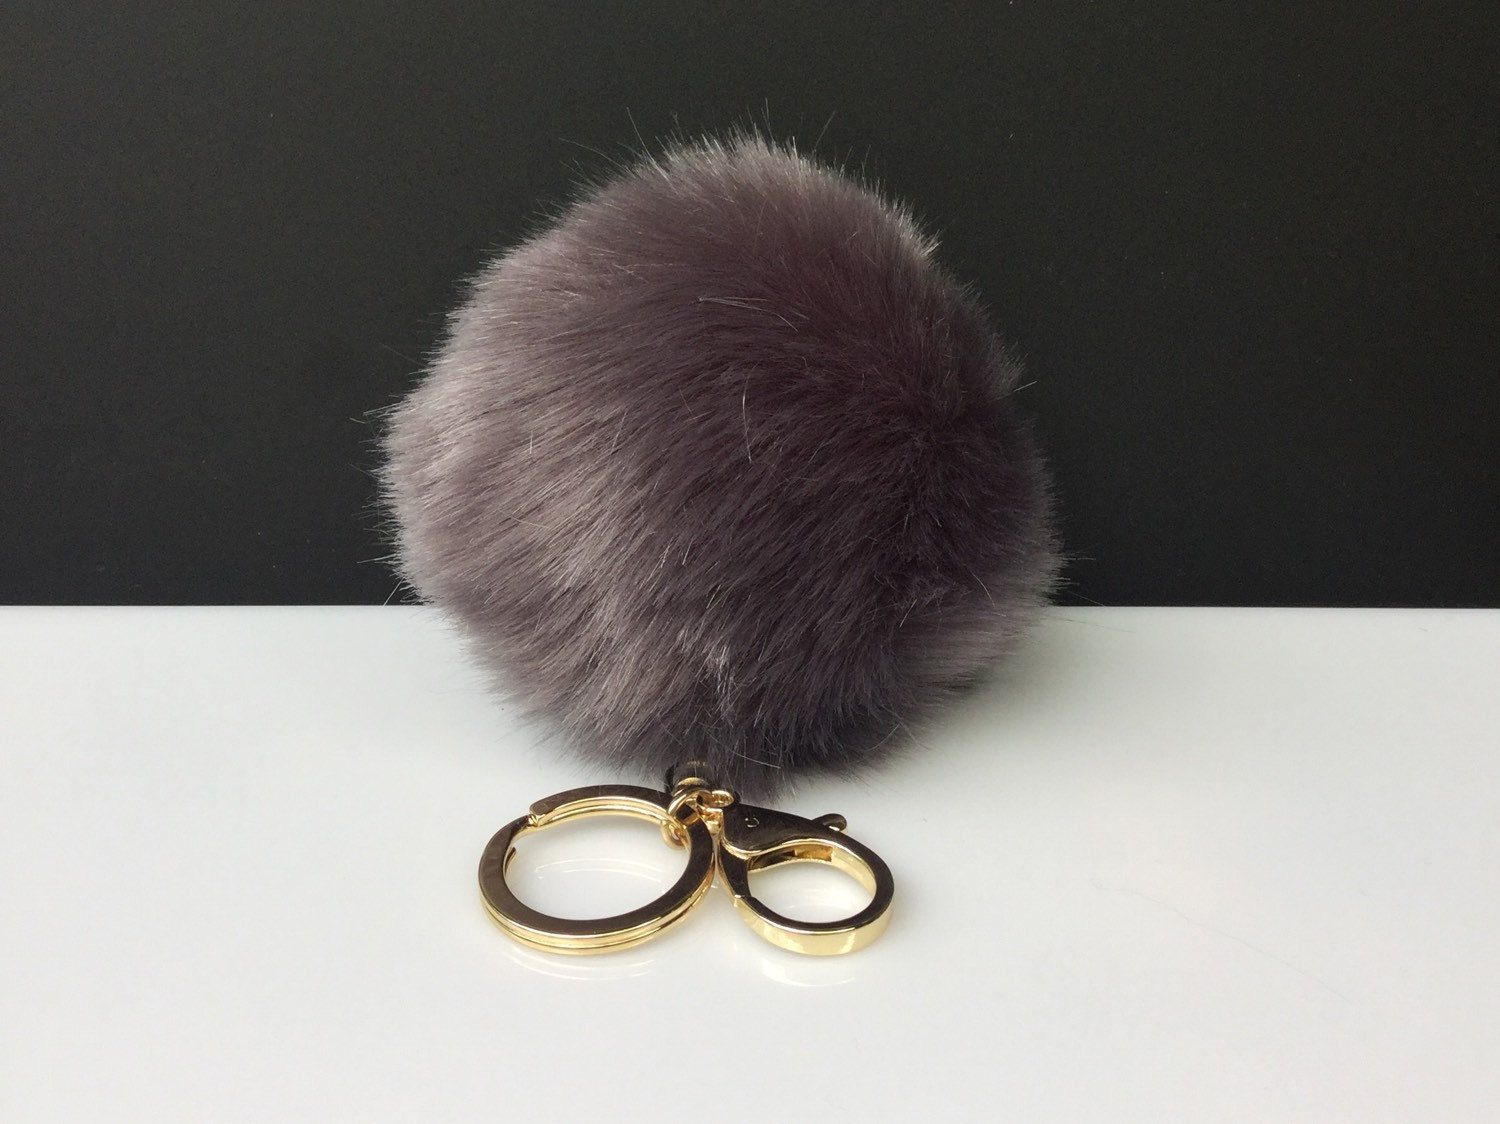 c808c774d7aa Faux Rabbit Fur Pom Pom bag Keyring Hot Couture Novelty keychain pom pom  fake fur ball in dark grey by YogaStudio55 on Etsy